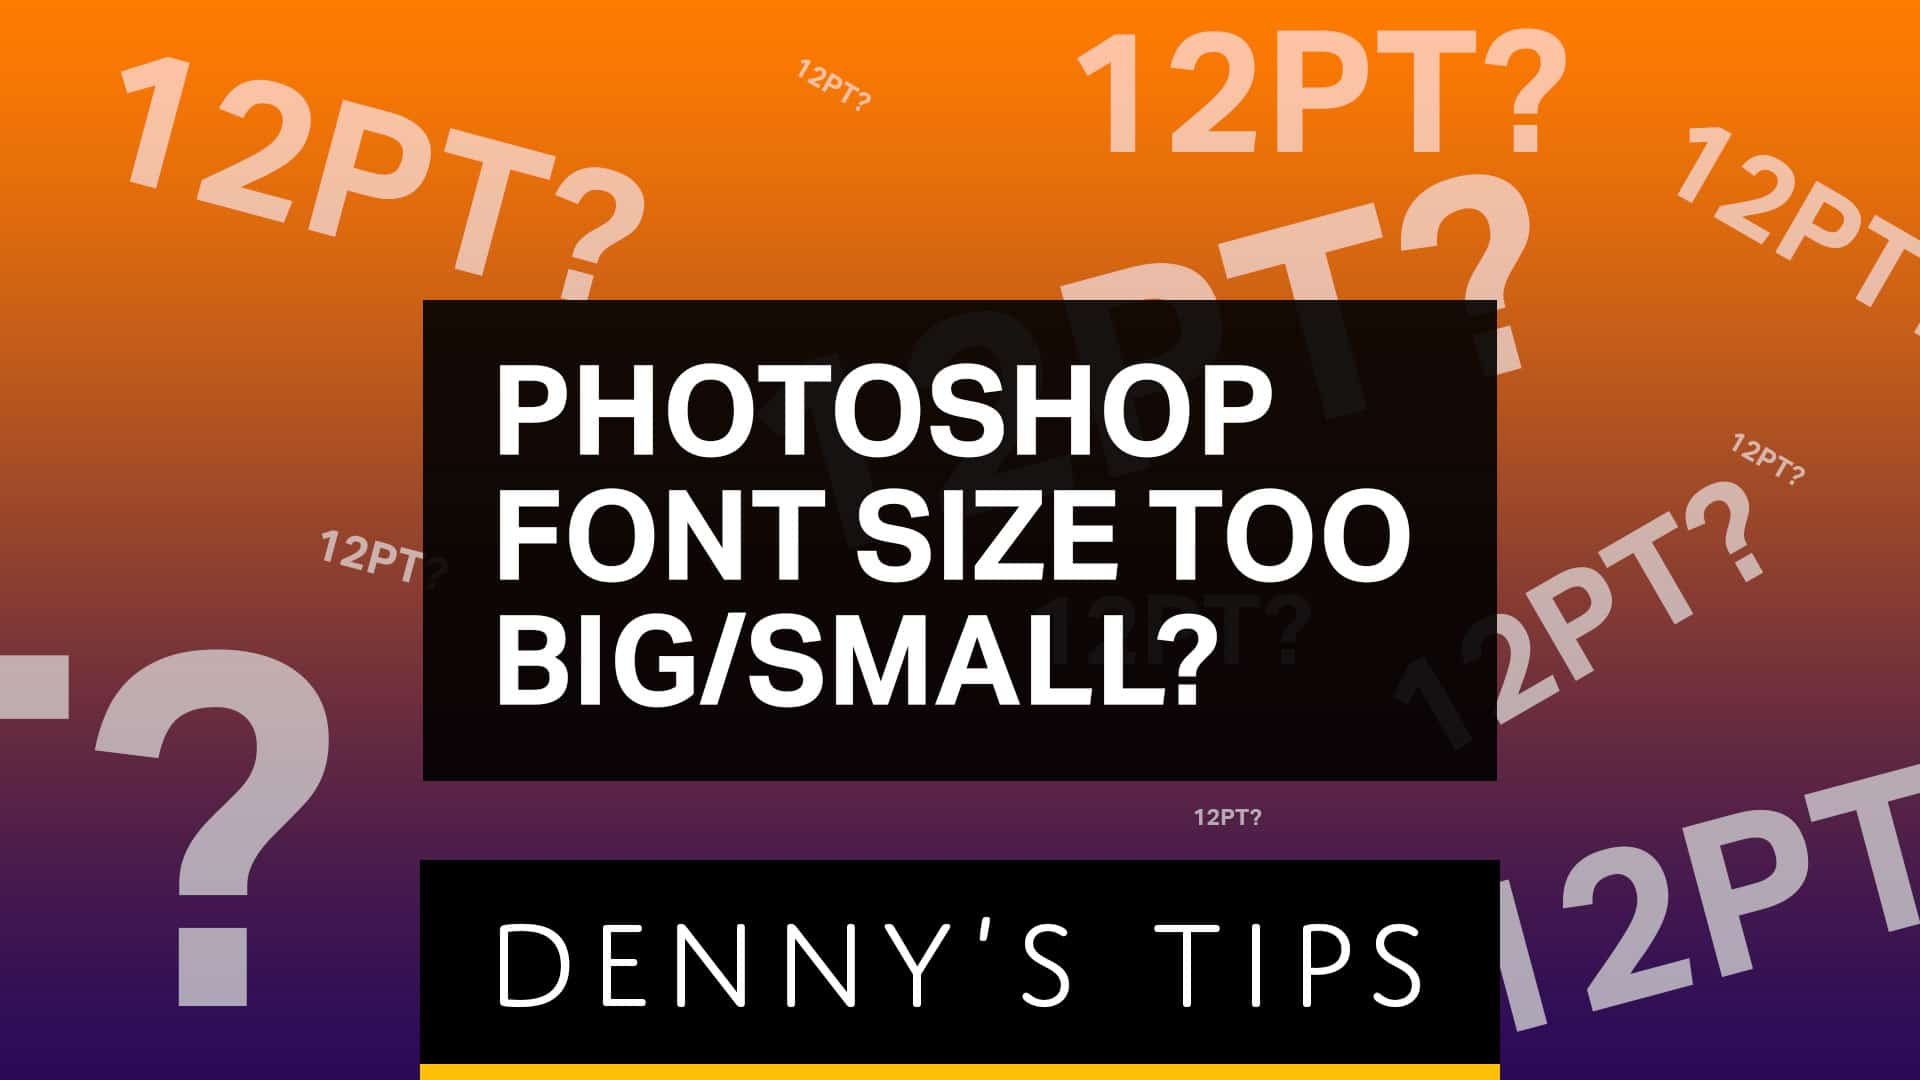 Why is the Font so Big or Small in Photoshop?